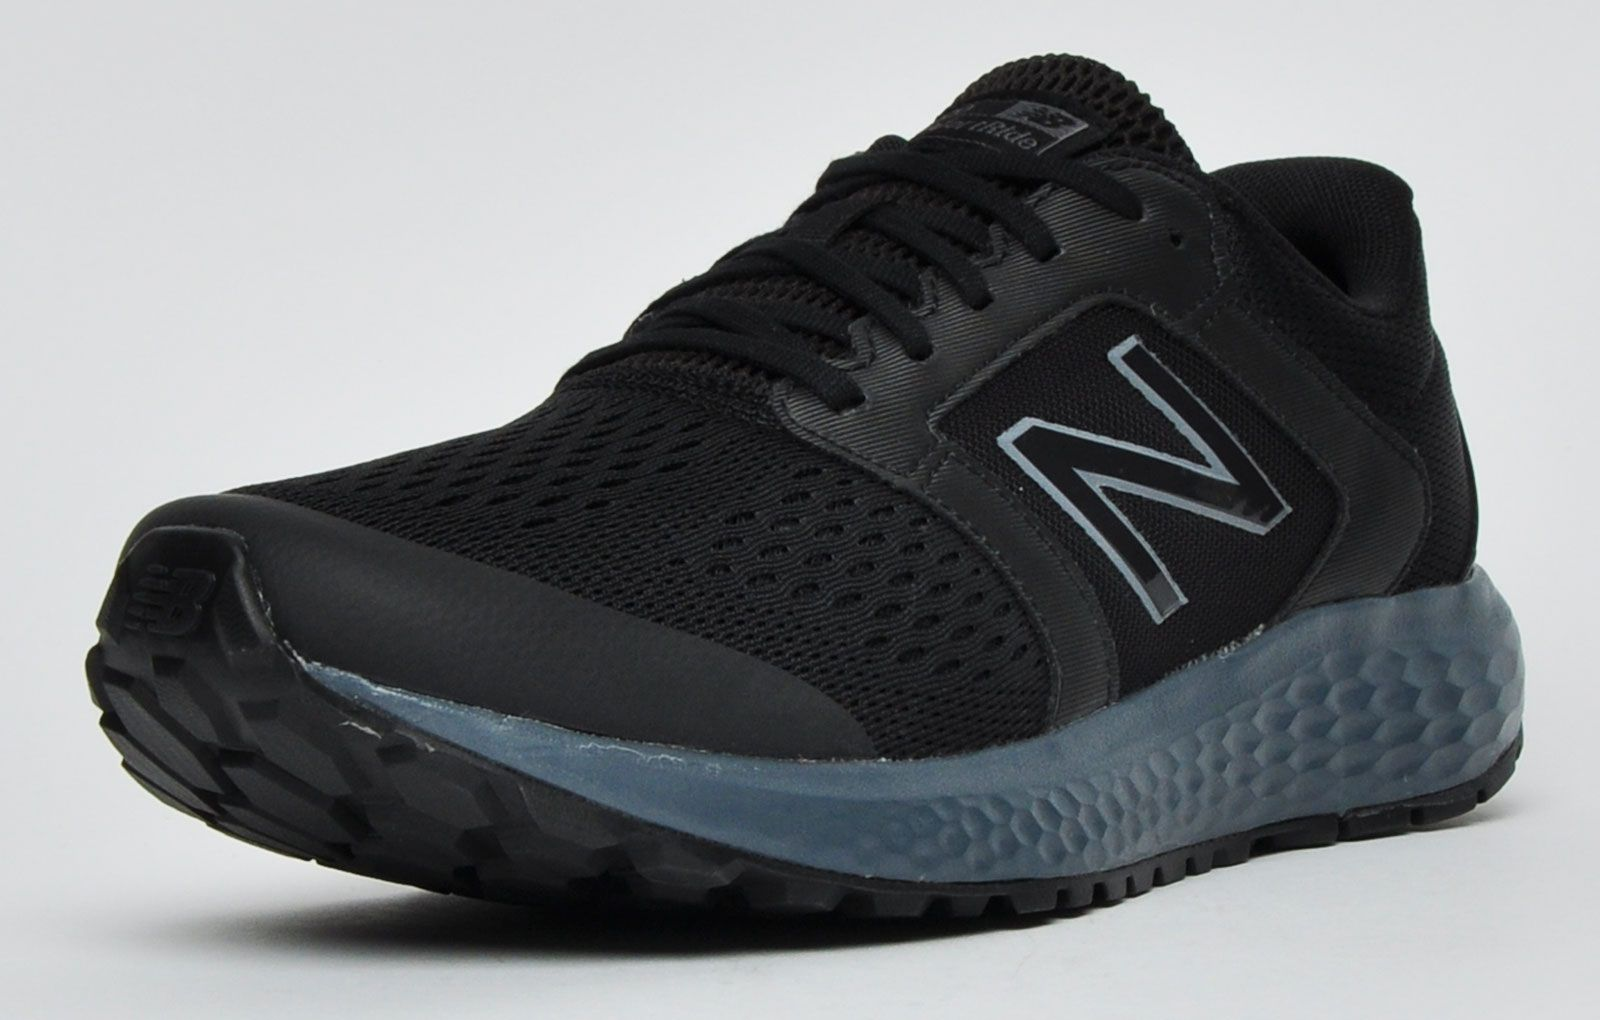 New Balance 520 Comfort Ride Mens